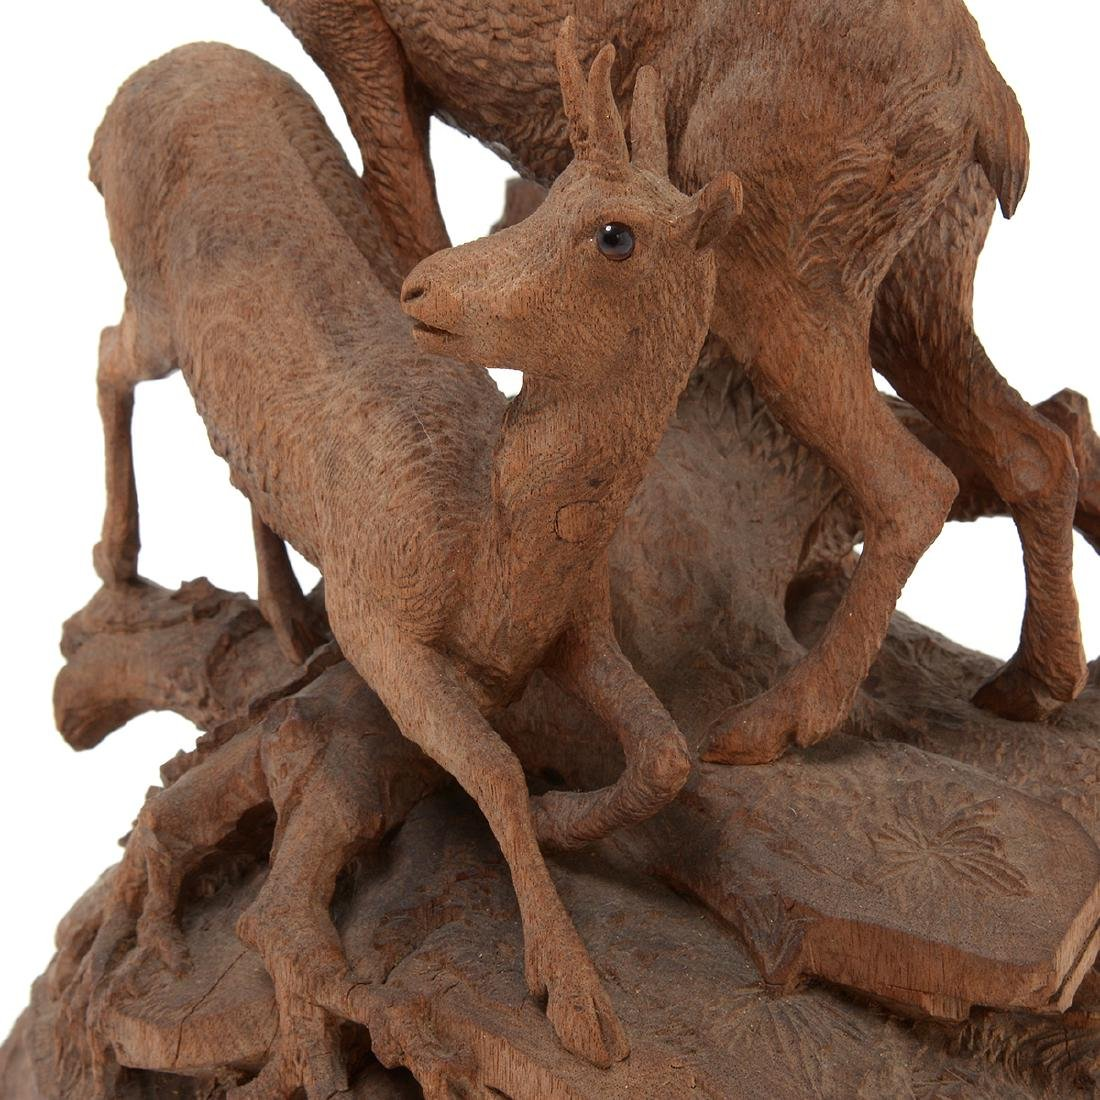 Swiss Carved Wood Centerpiece of Two Mountain Goats, - 4